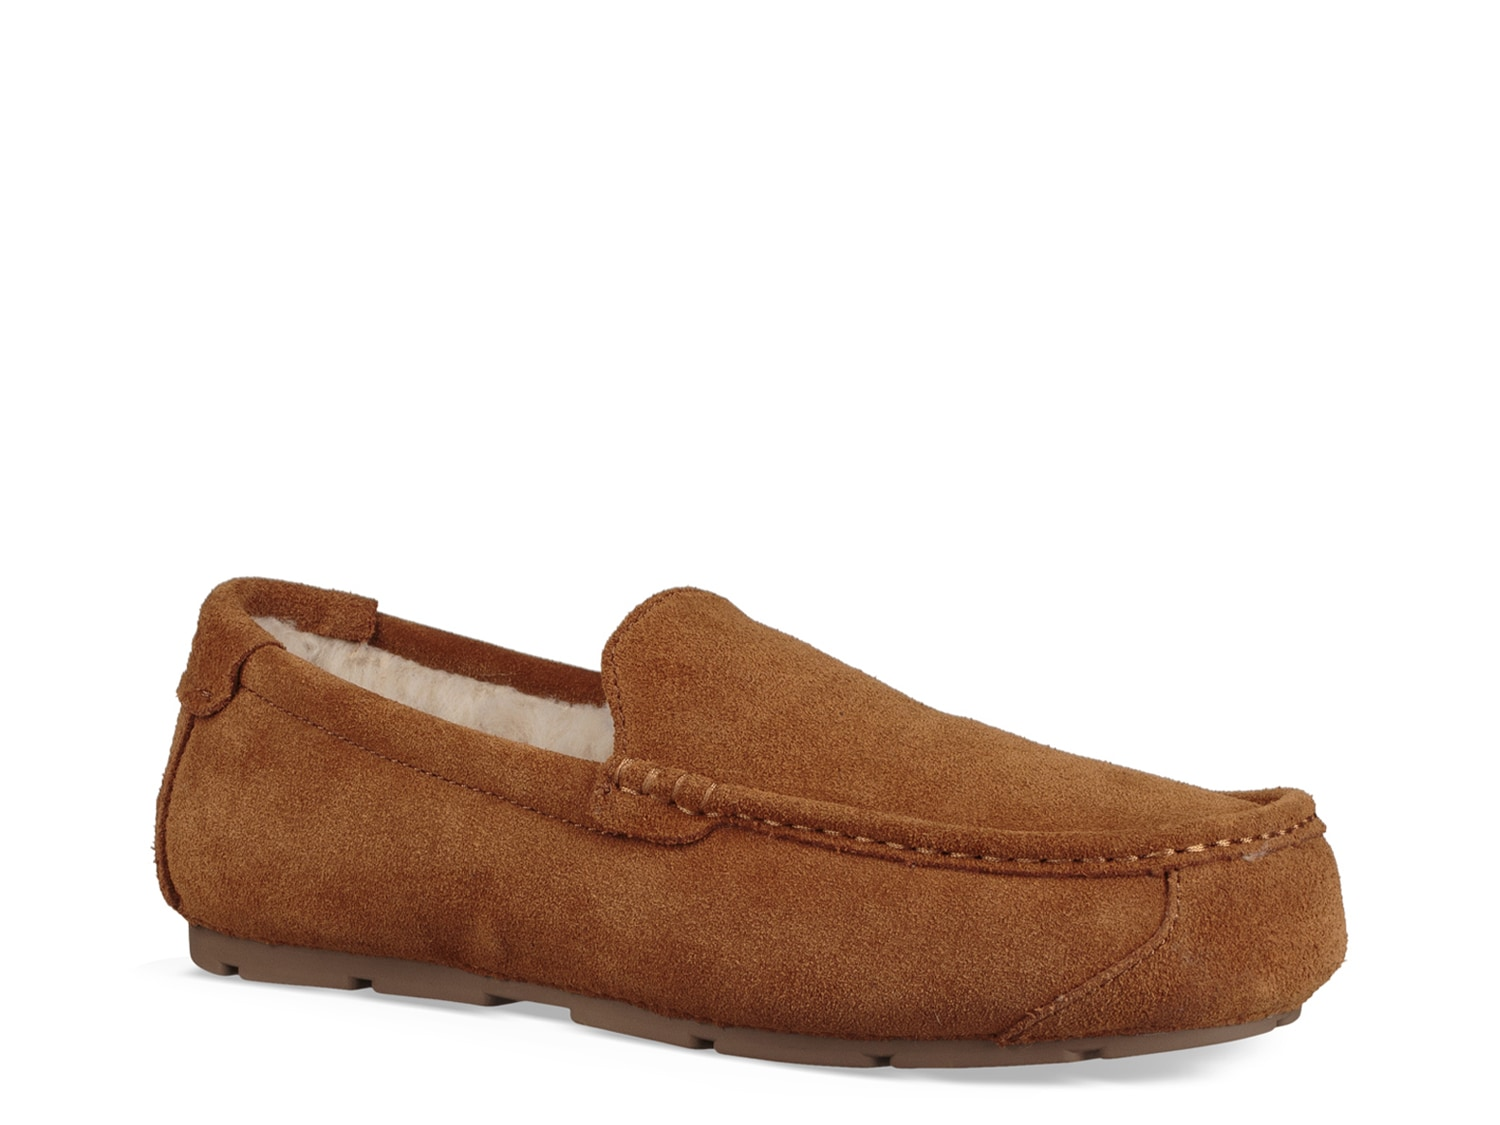 Tipton Slipper; holiday gift guide for him